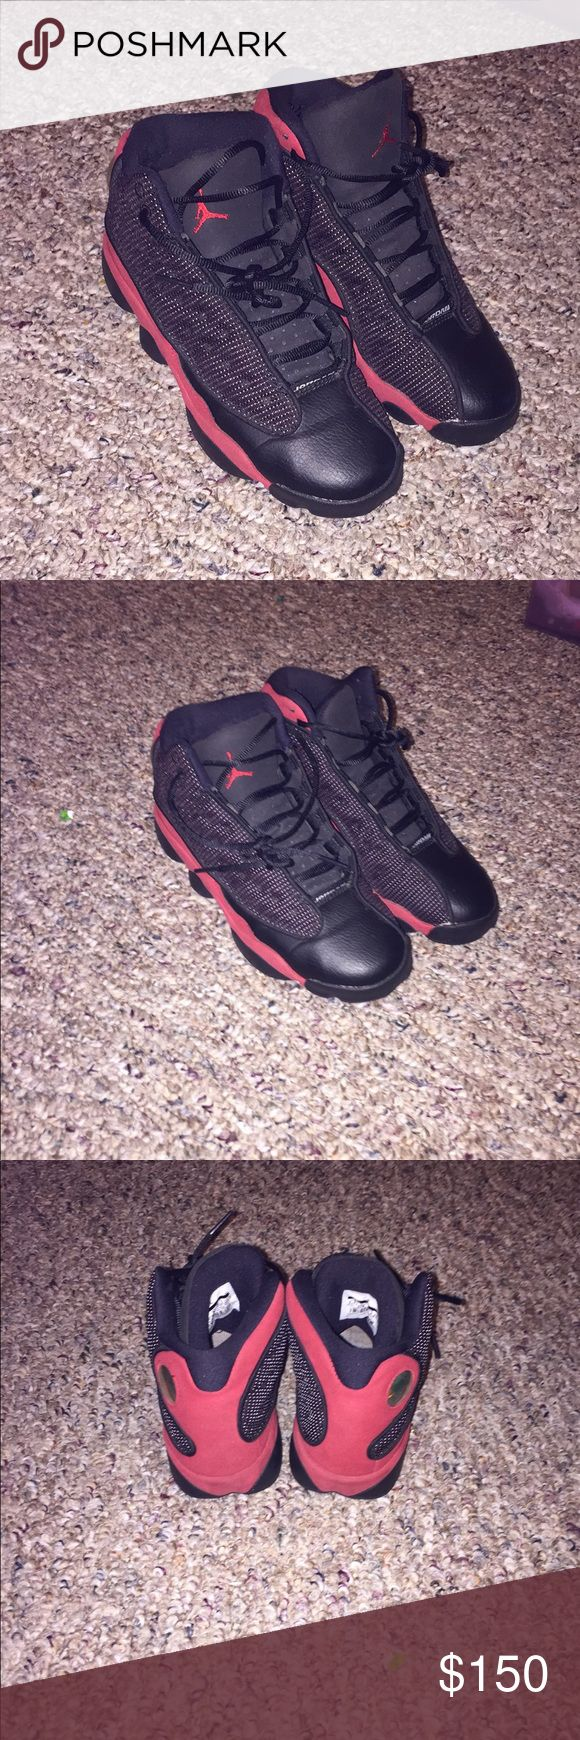 Jordan Bred 13s Size 4.5 !!  Good condition!  Contact for more info !! Air Jordan Shoes Sneakers